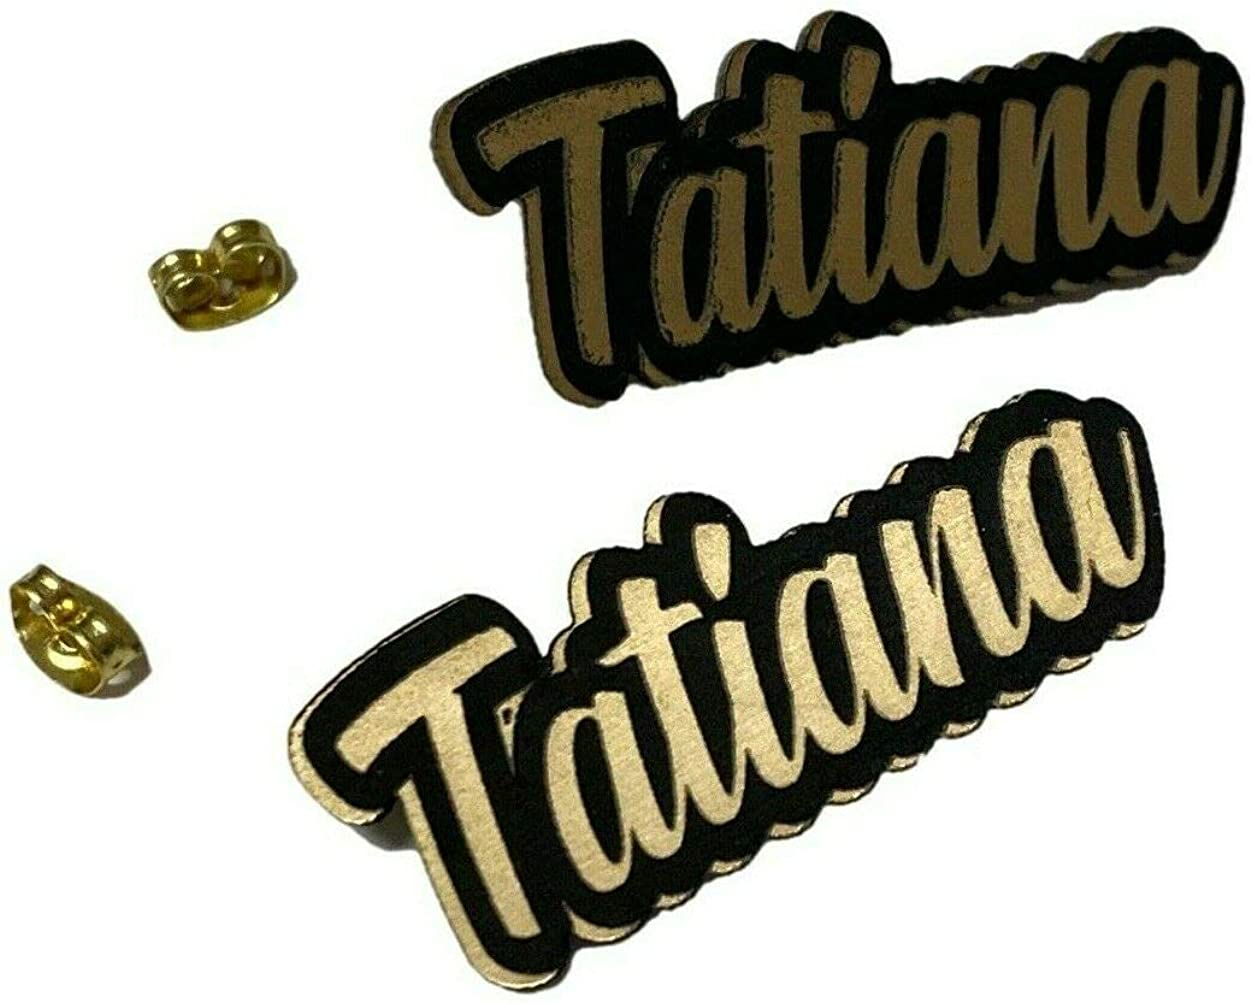 Personalized Custom Black and Gold Posts Studs Earrings Name Plate Laser Cut Design Stunning - Quality, Attractive Fashion Earrings, Made To Order, Any Name or Word - 1 INCH Size, Post Earrings Design